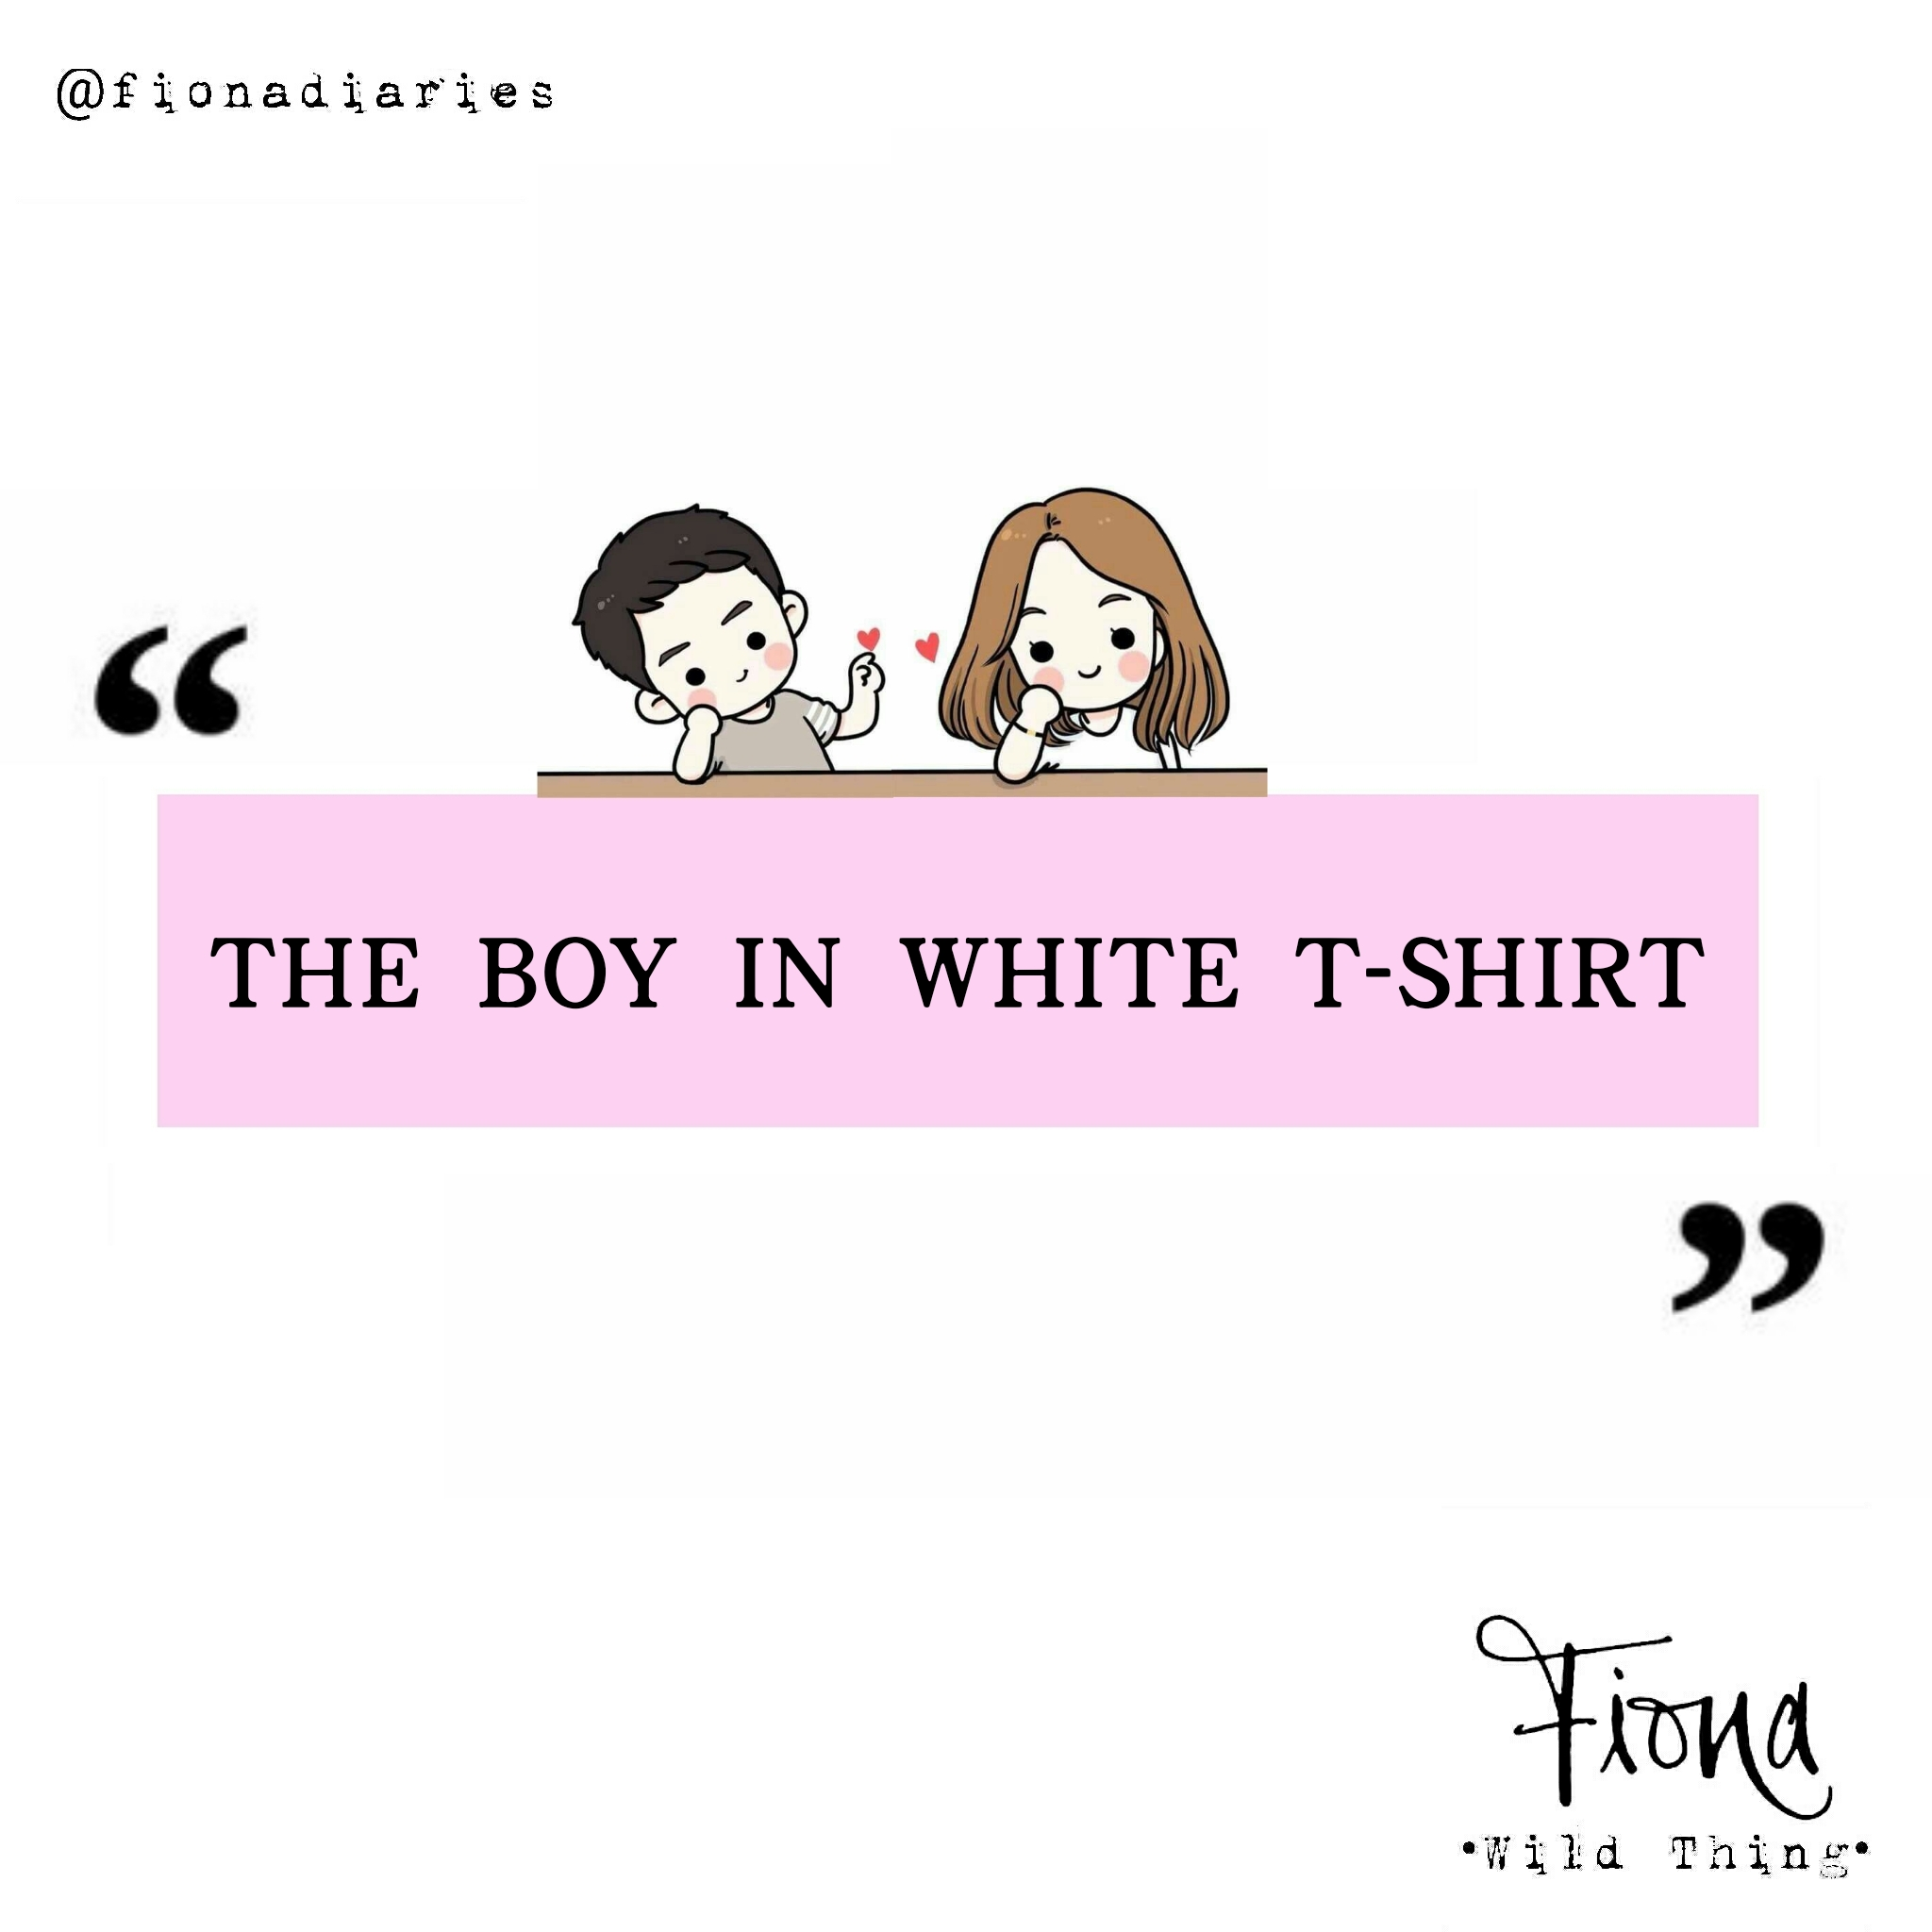 The Boy In White T-shirt